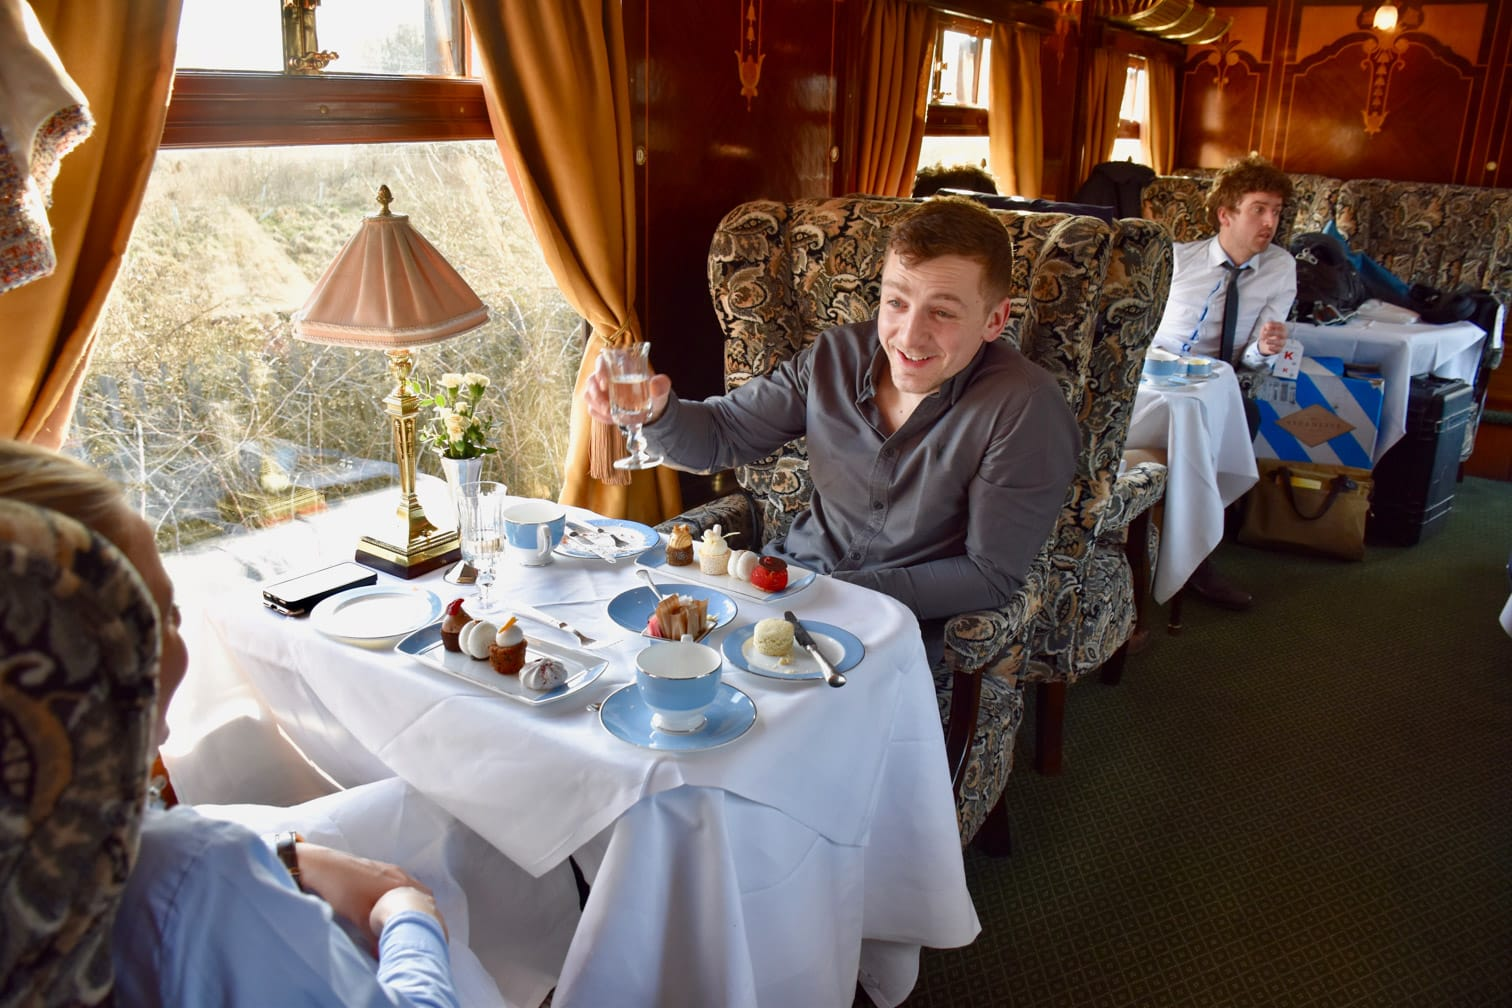 Guests dining in the Belmond British Pullman train